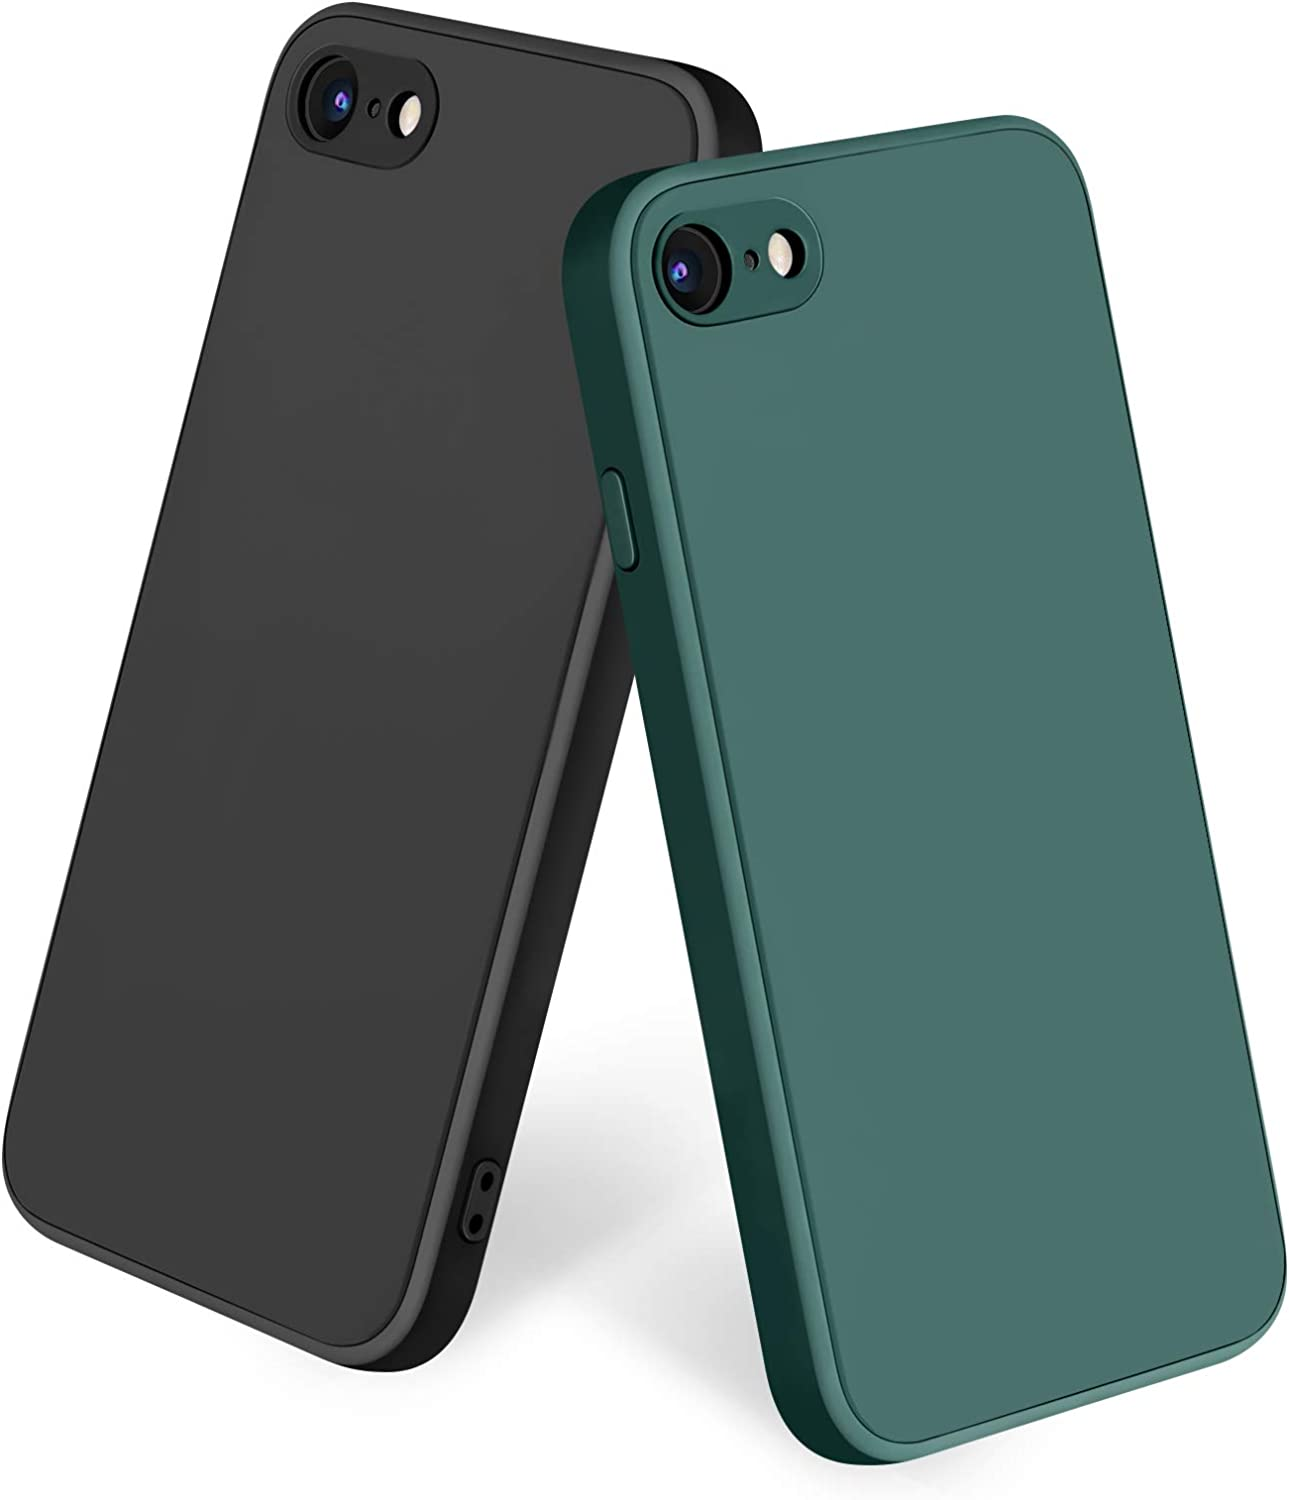 Amzpas [2 Pack] Compatible with iPhone SE 2020 Case, iPhone 8 7 Case Silicone Phone Case, Slim Shockproof Protective Cover Case with [Soft Microfiber Lining] (Black + Midnight Green)